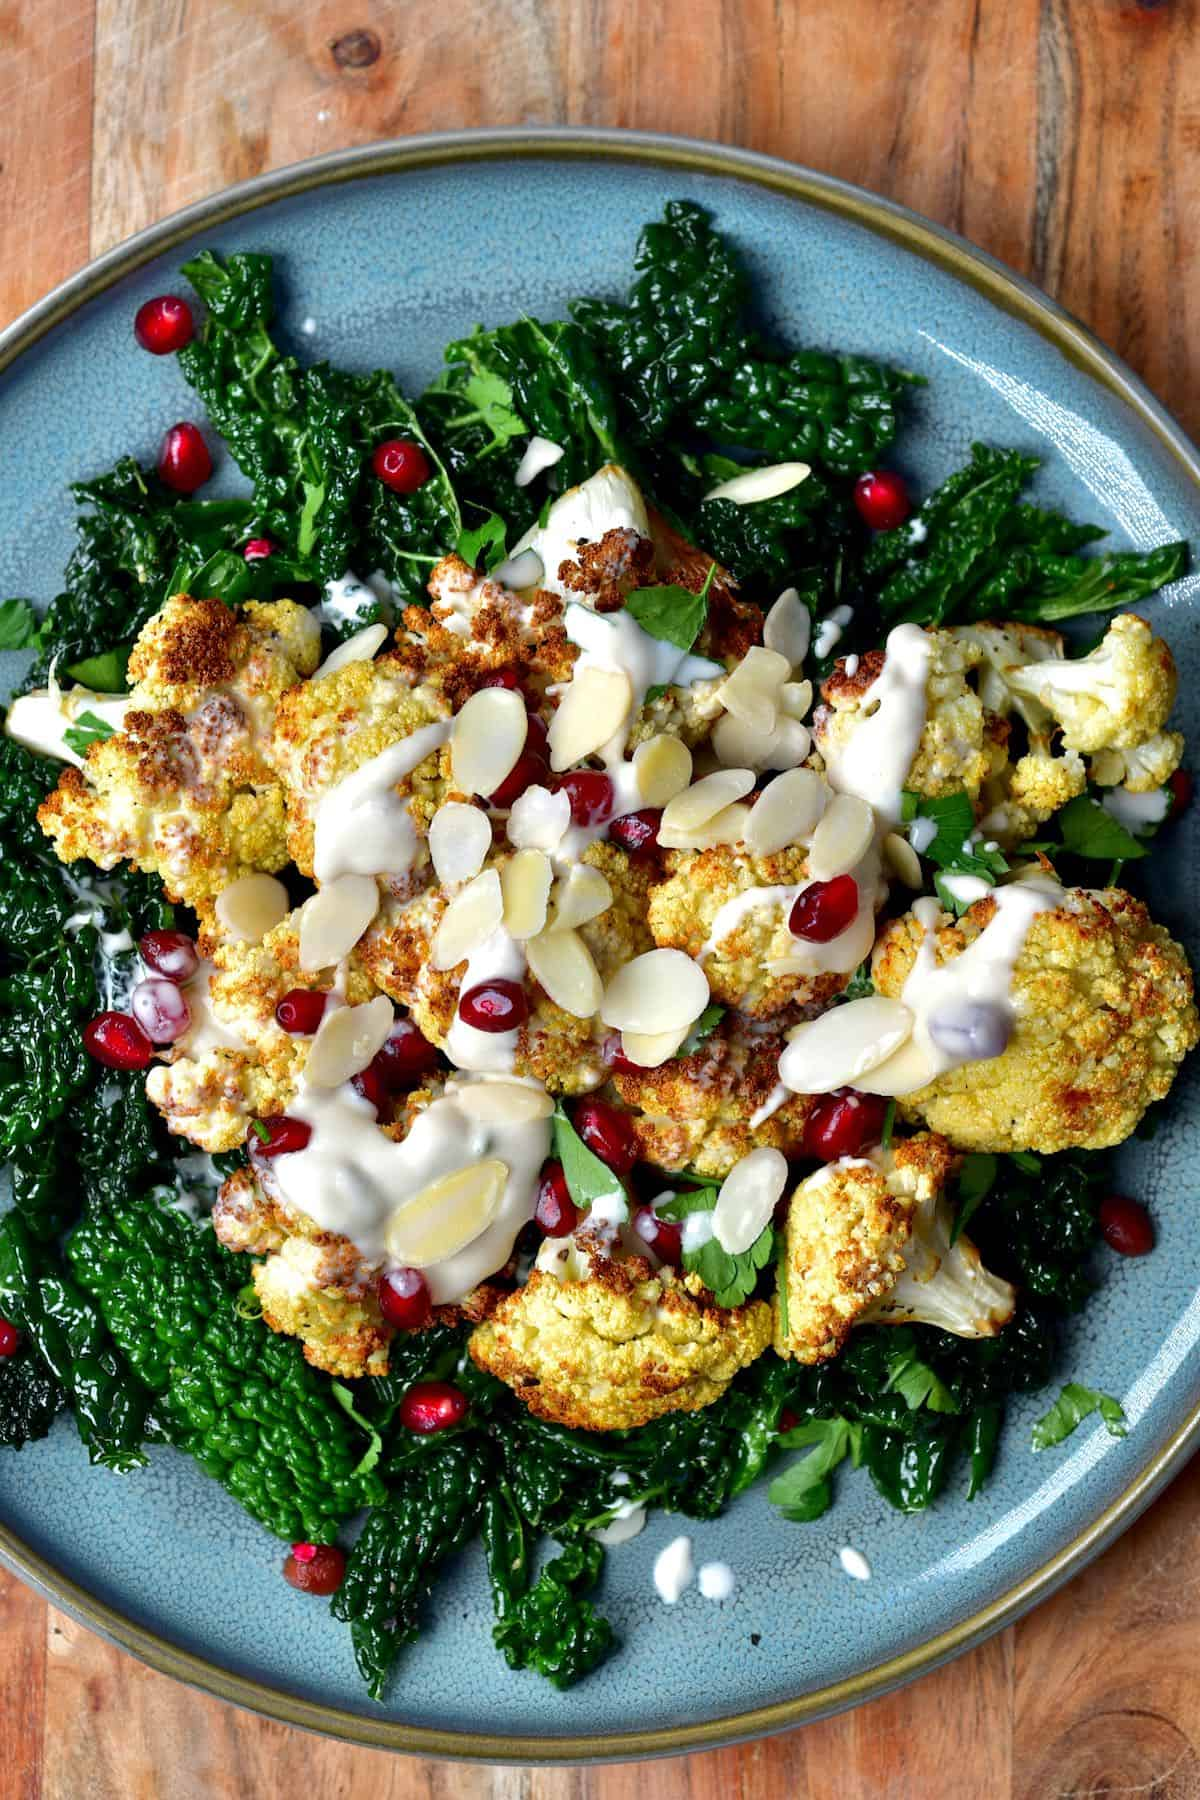 A serving of kale salad and baked cauliflower topped with pomegranate seeds and tahini sauce